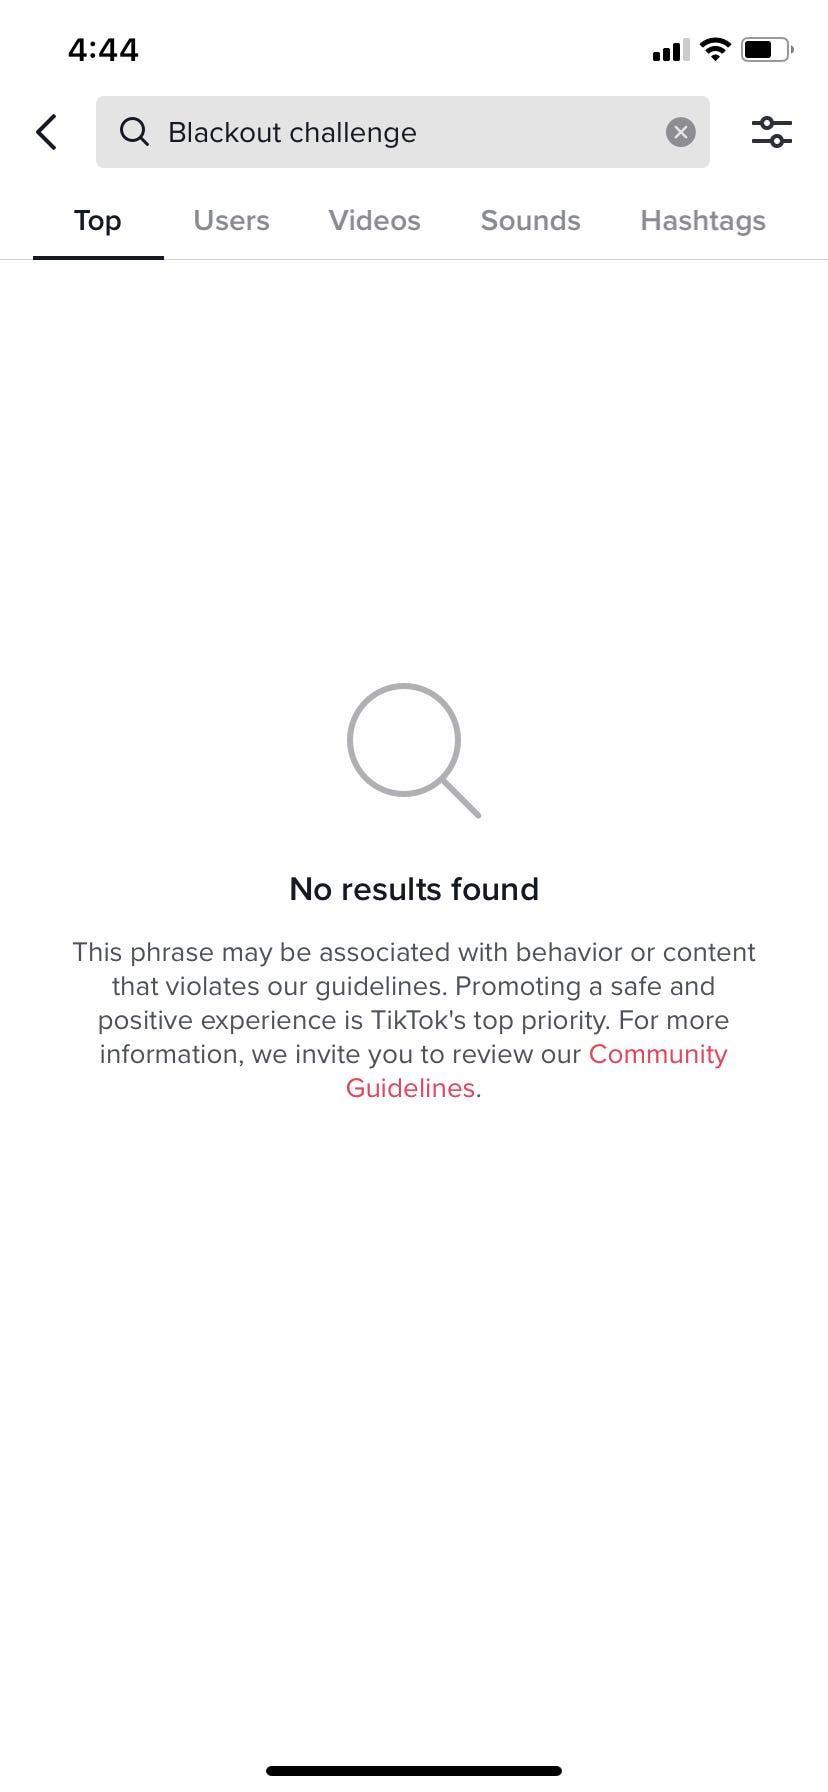 """TikTok's user interface, the text """"Blackout challenge"""" is typed into the search bar. The screen shows no results and a statement that the phrase may be associated with behavior or content that violates tiktok's community guidelines."""